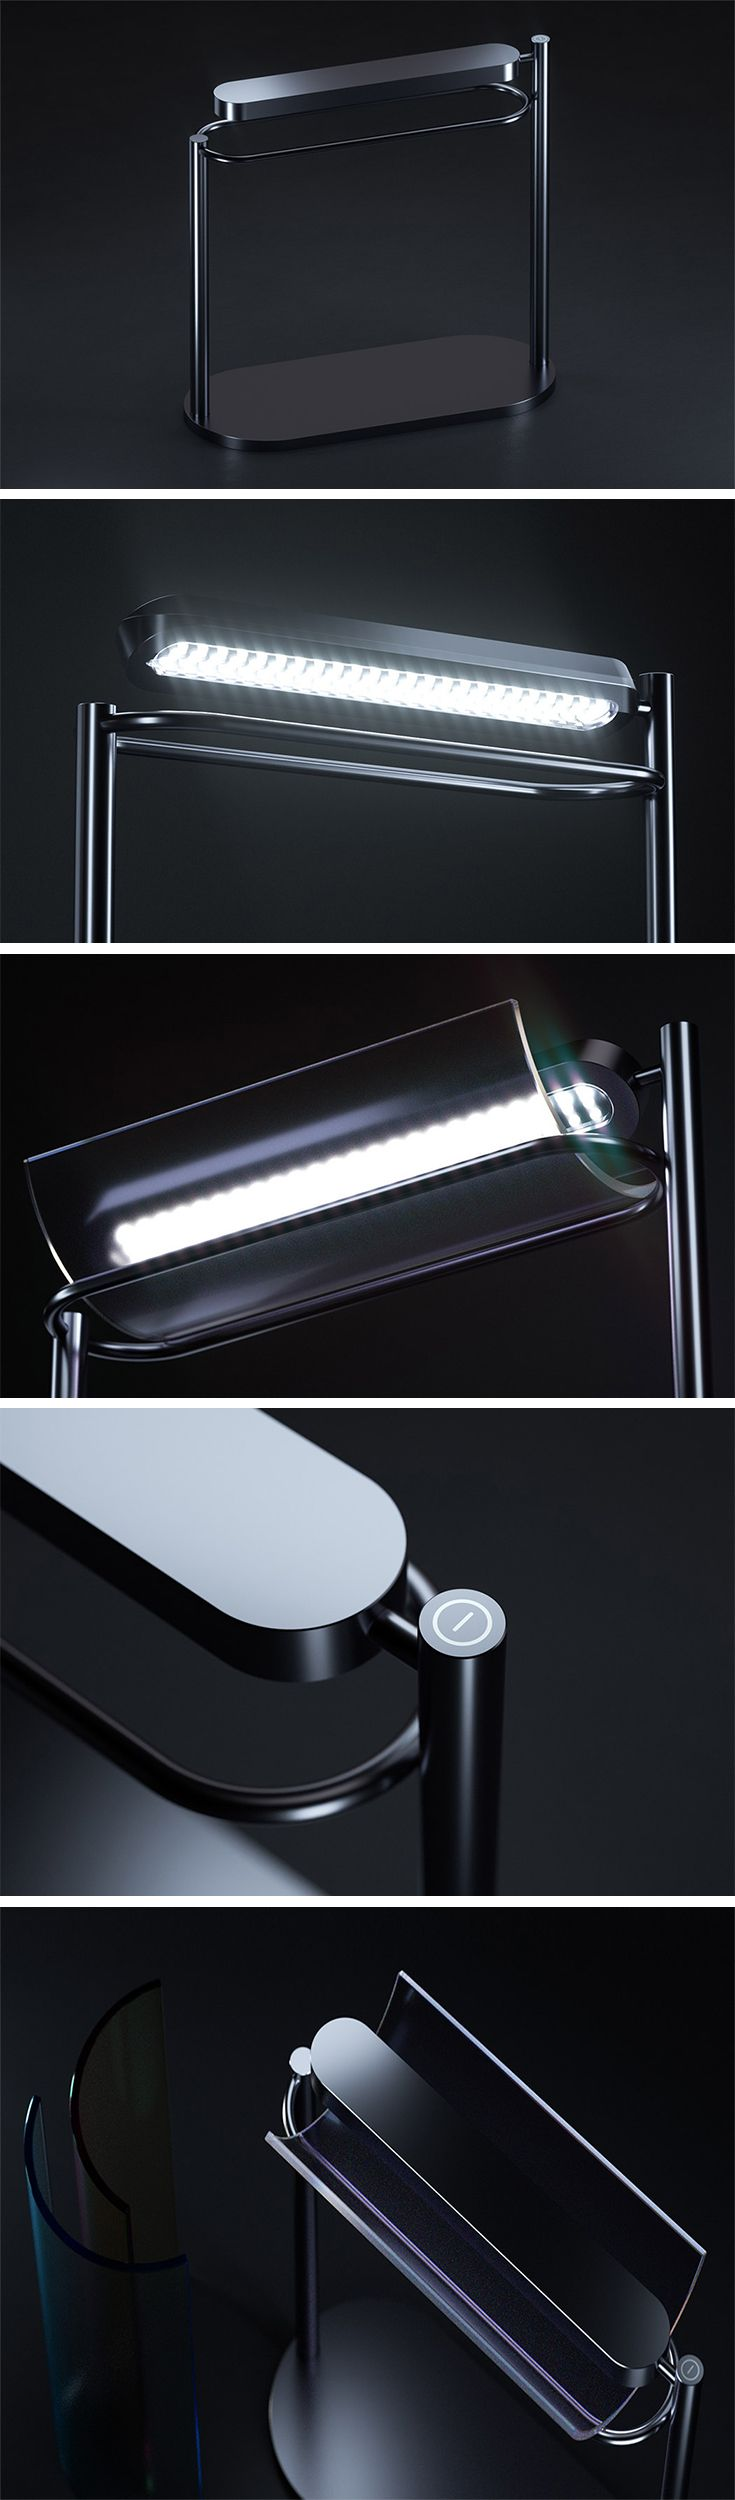 This modern desk lamp by Sungick Jo combines a monochromatic exterior with multi-hued functionality. Elevated by two pillars, it will illuminate your desk or draft table with bright working light. With interchangeable glass filters and a RGB LED, users can adjust the tone to their liking or mood with an almost infinite number of color and brightness settings.